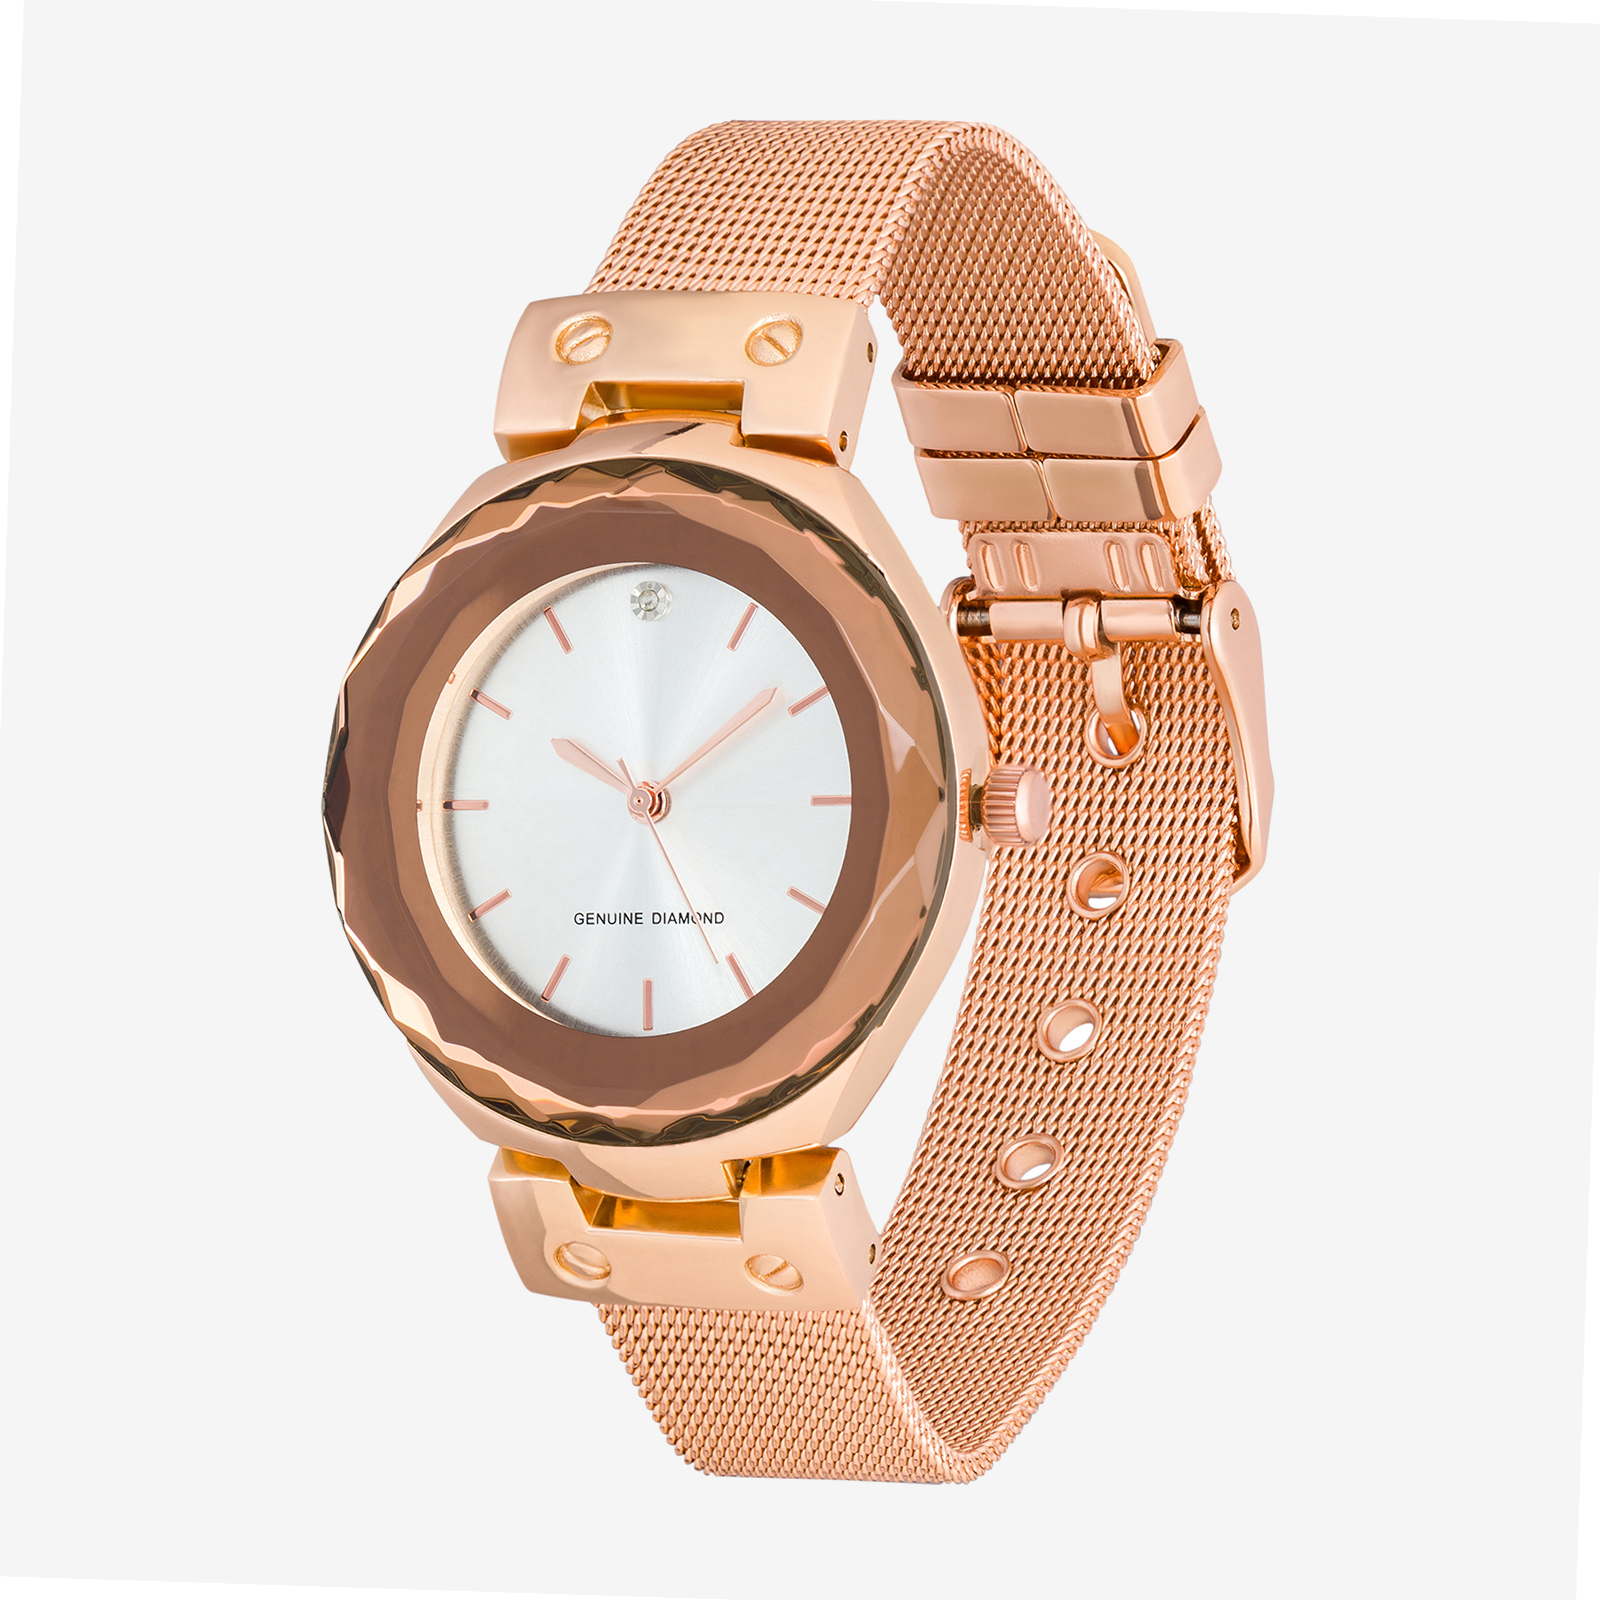 watch product photo, watches product photography